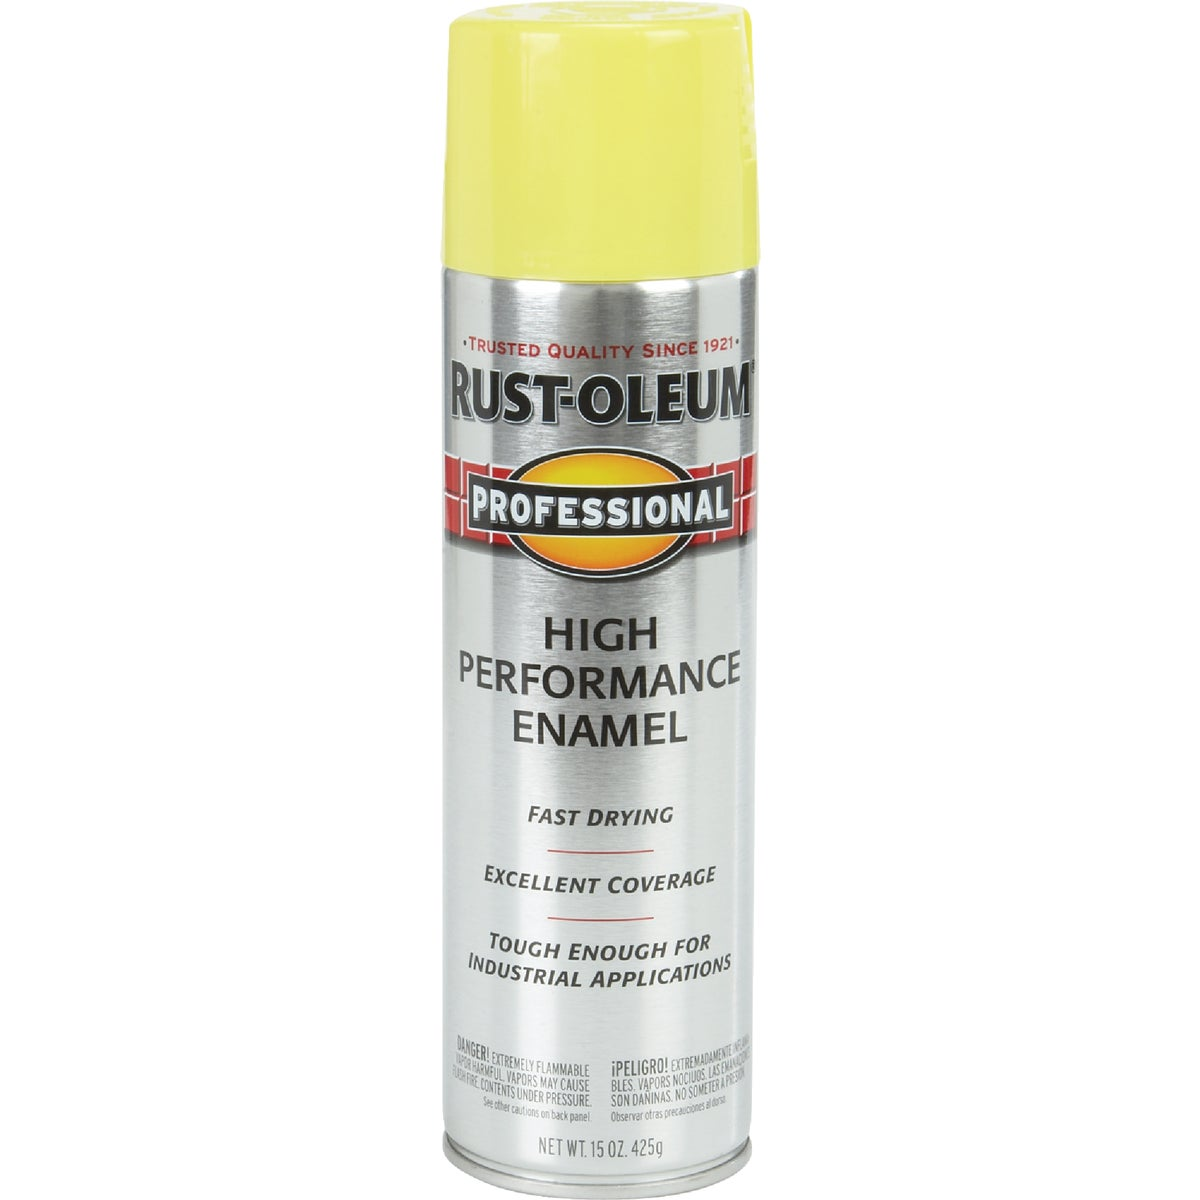 SAFE YEL PRO SPRAY PAINT - 7543-838 by Rustoleum